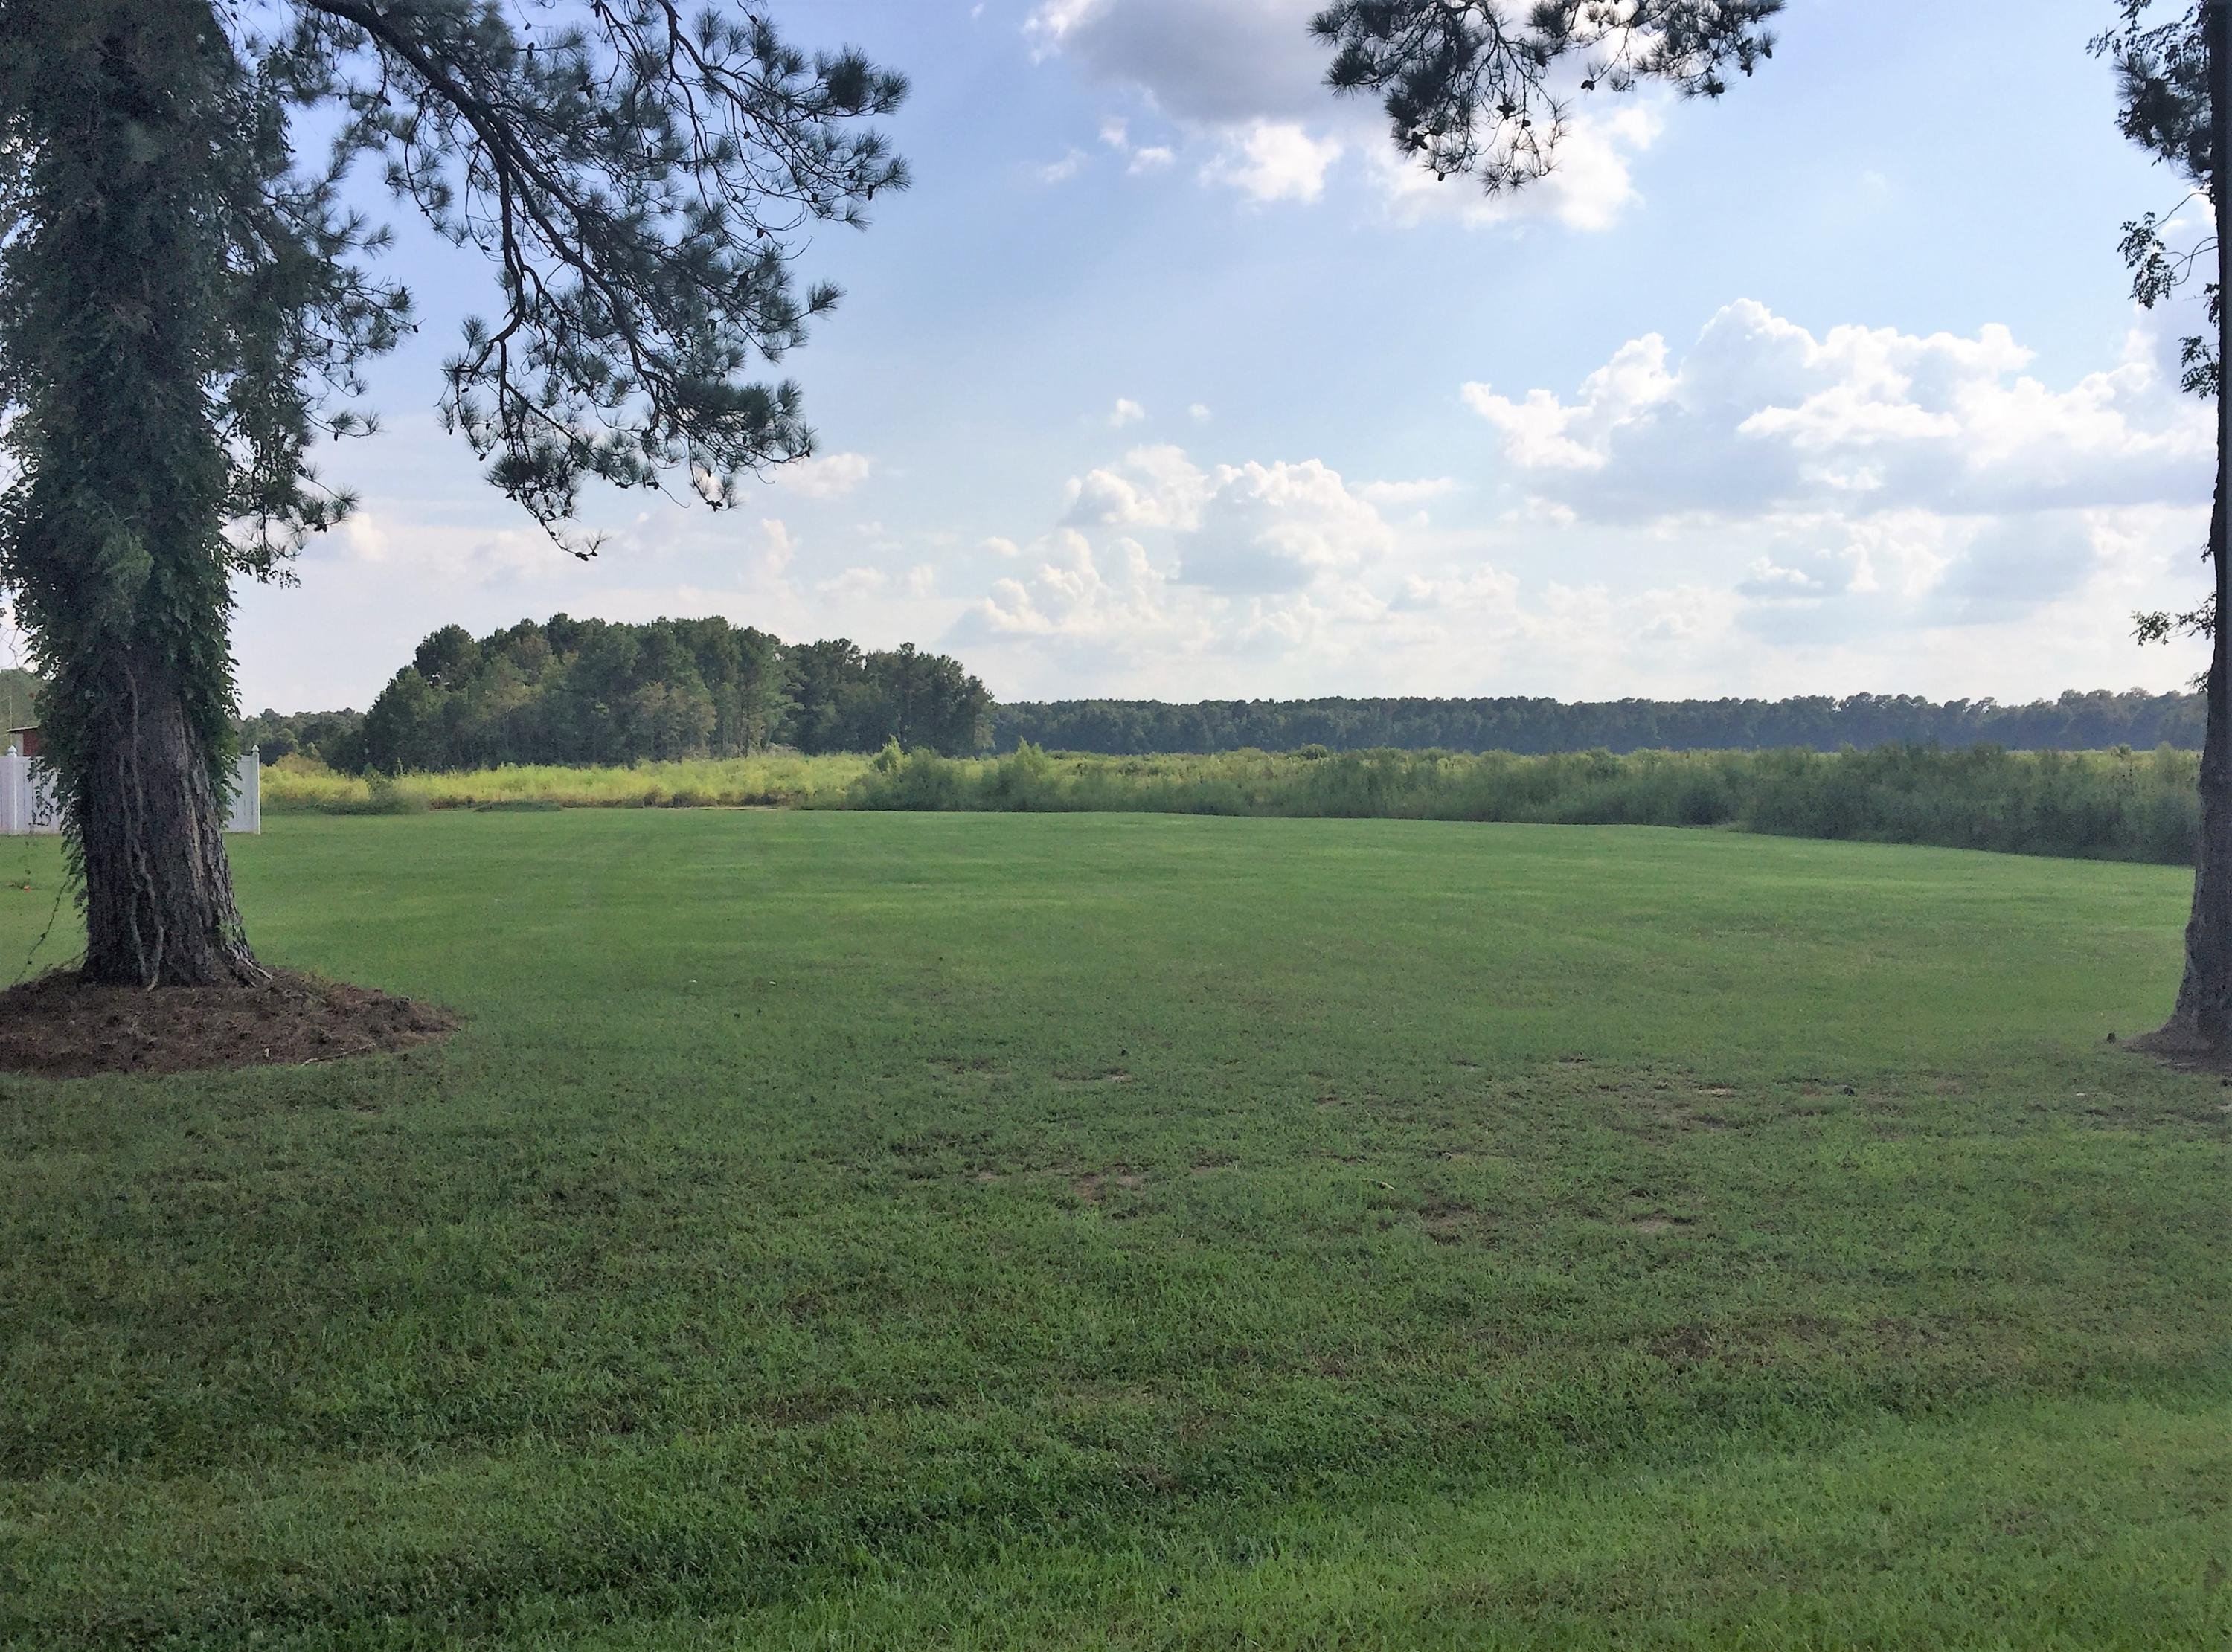 Eunice commercial property for sale, 1686 Tiger Ln, Eunice LA - $247,500